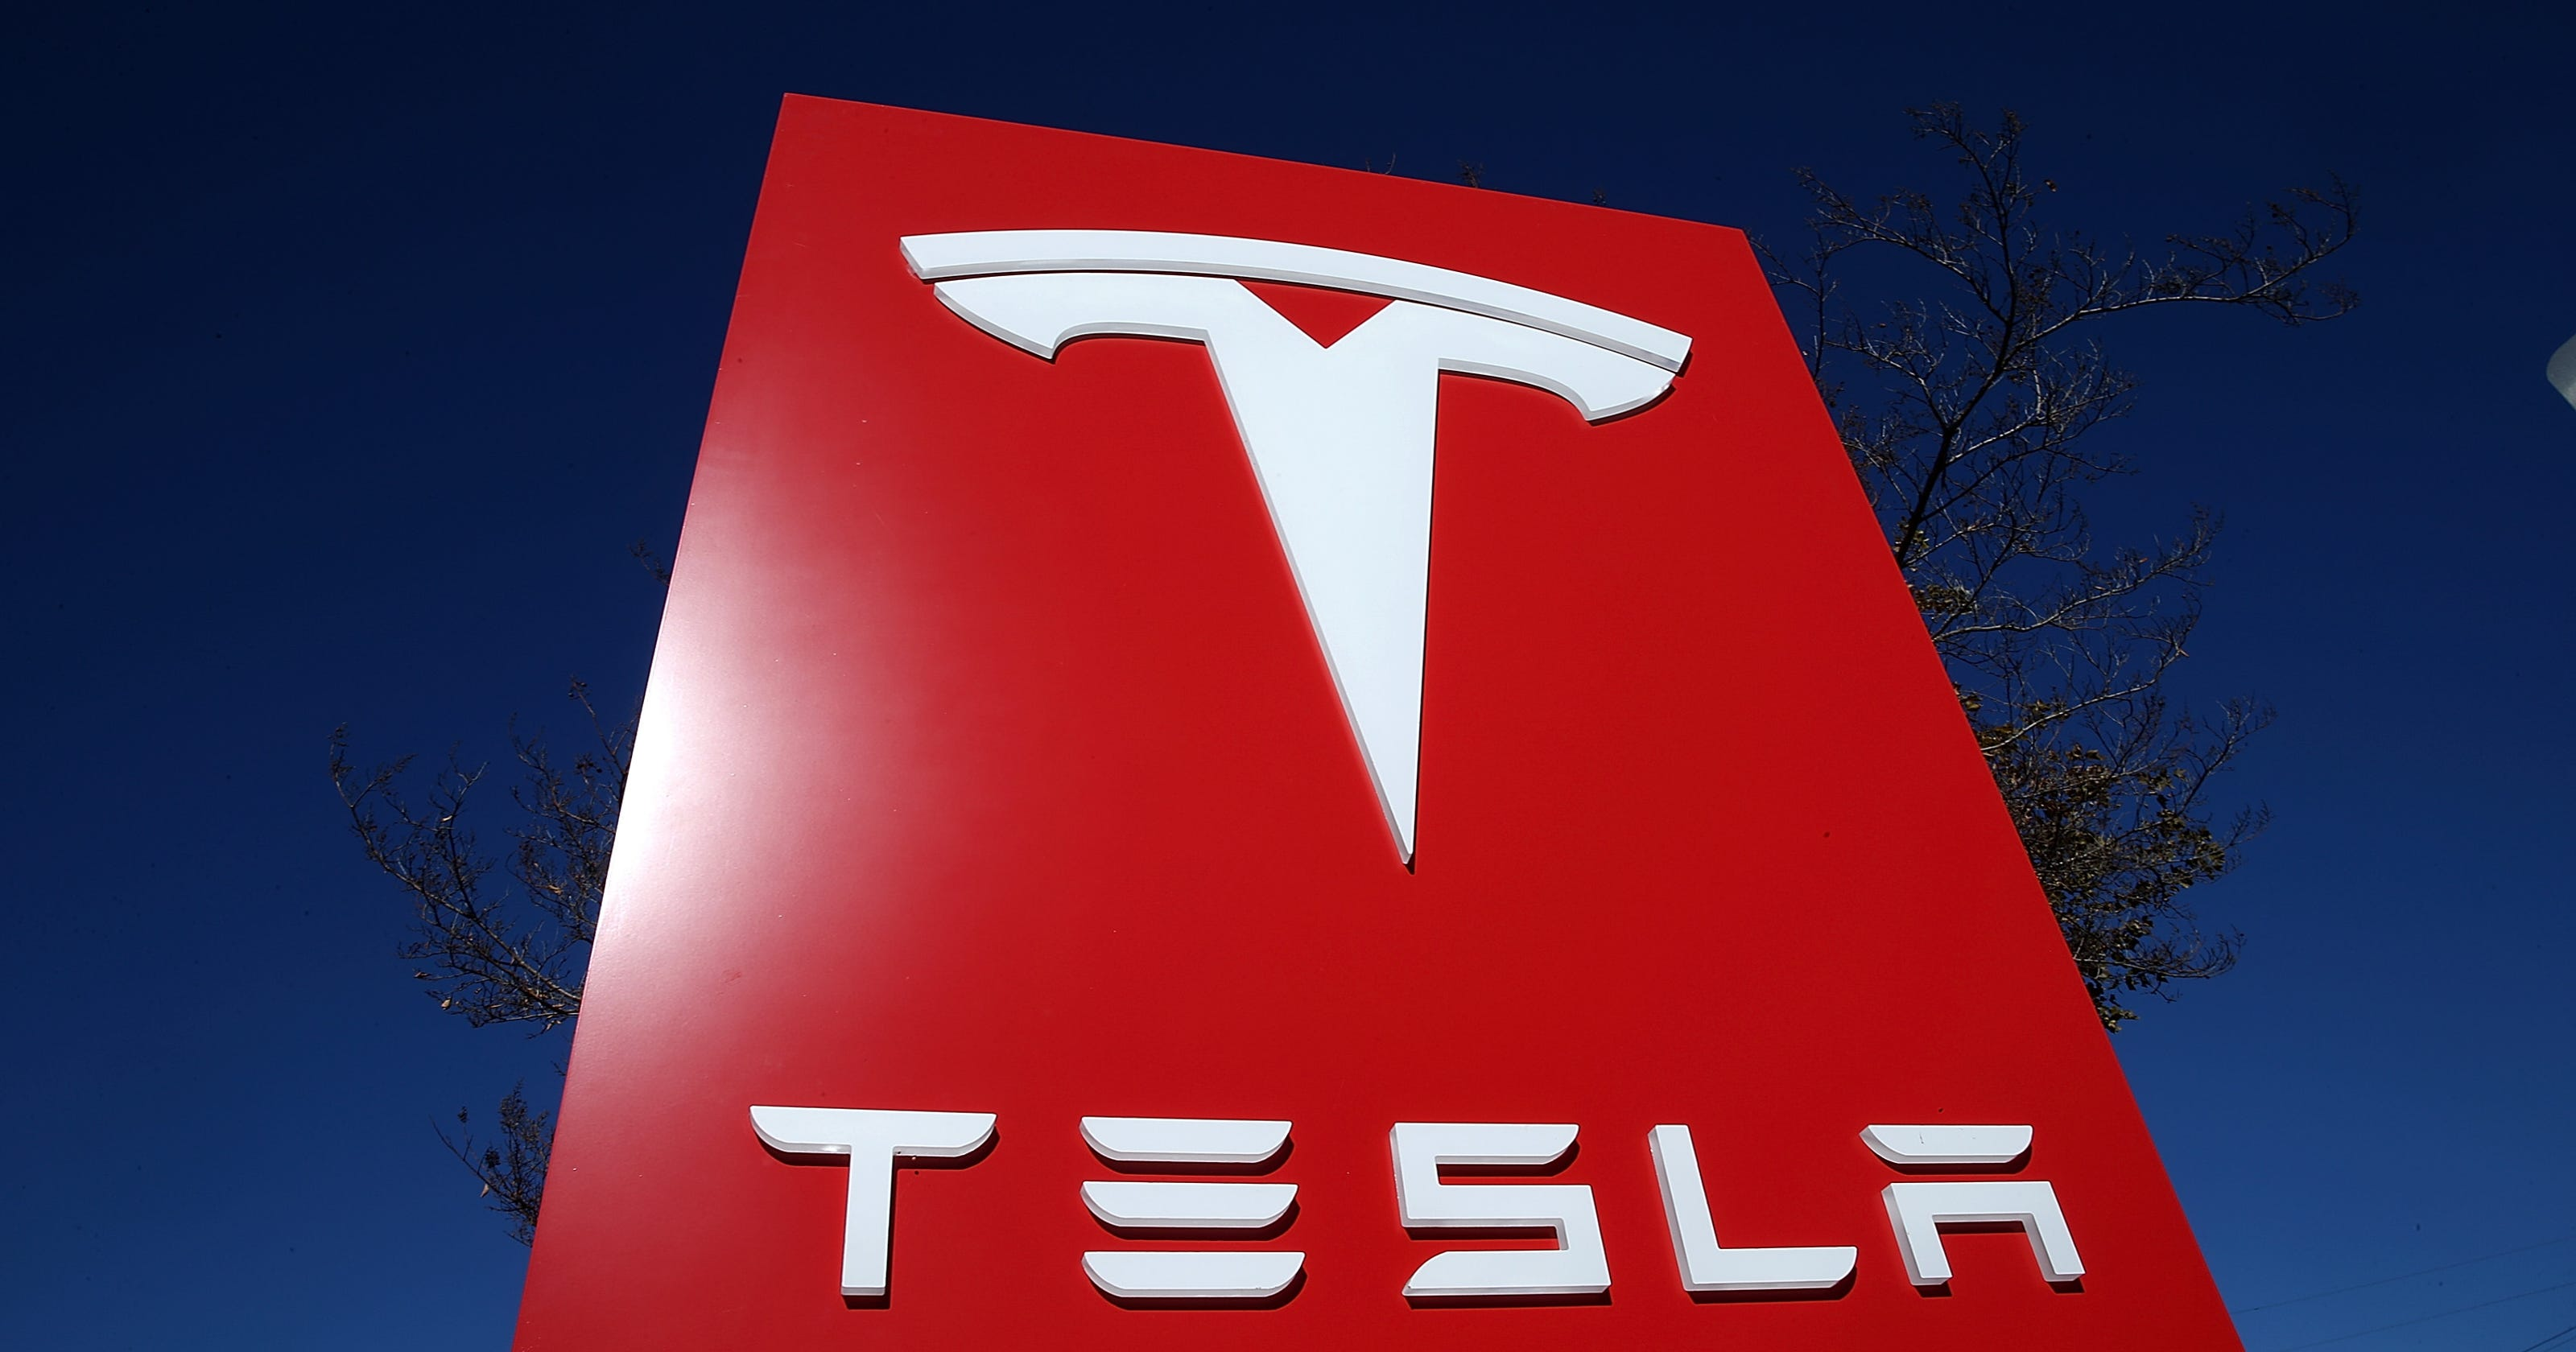 Tesla Shares Tumble As It Makes Offer For Solarcity